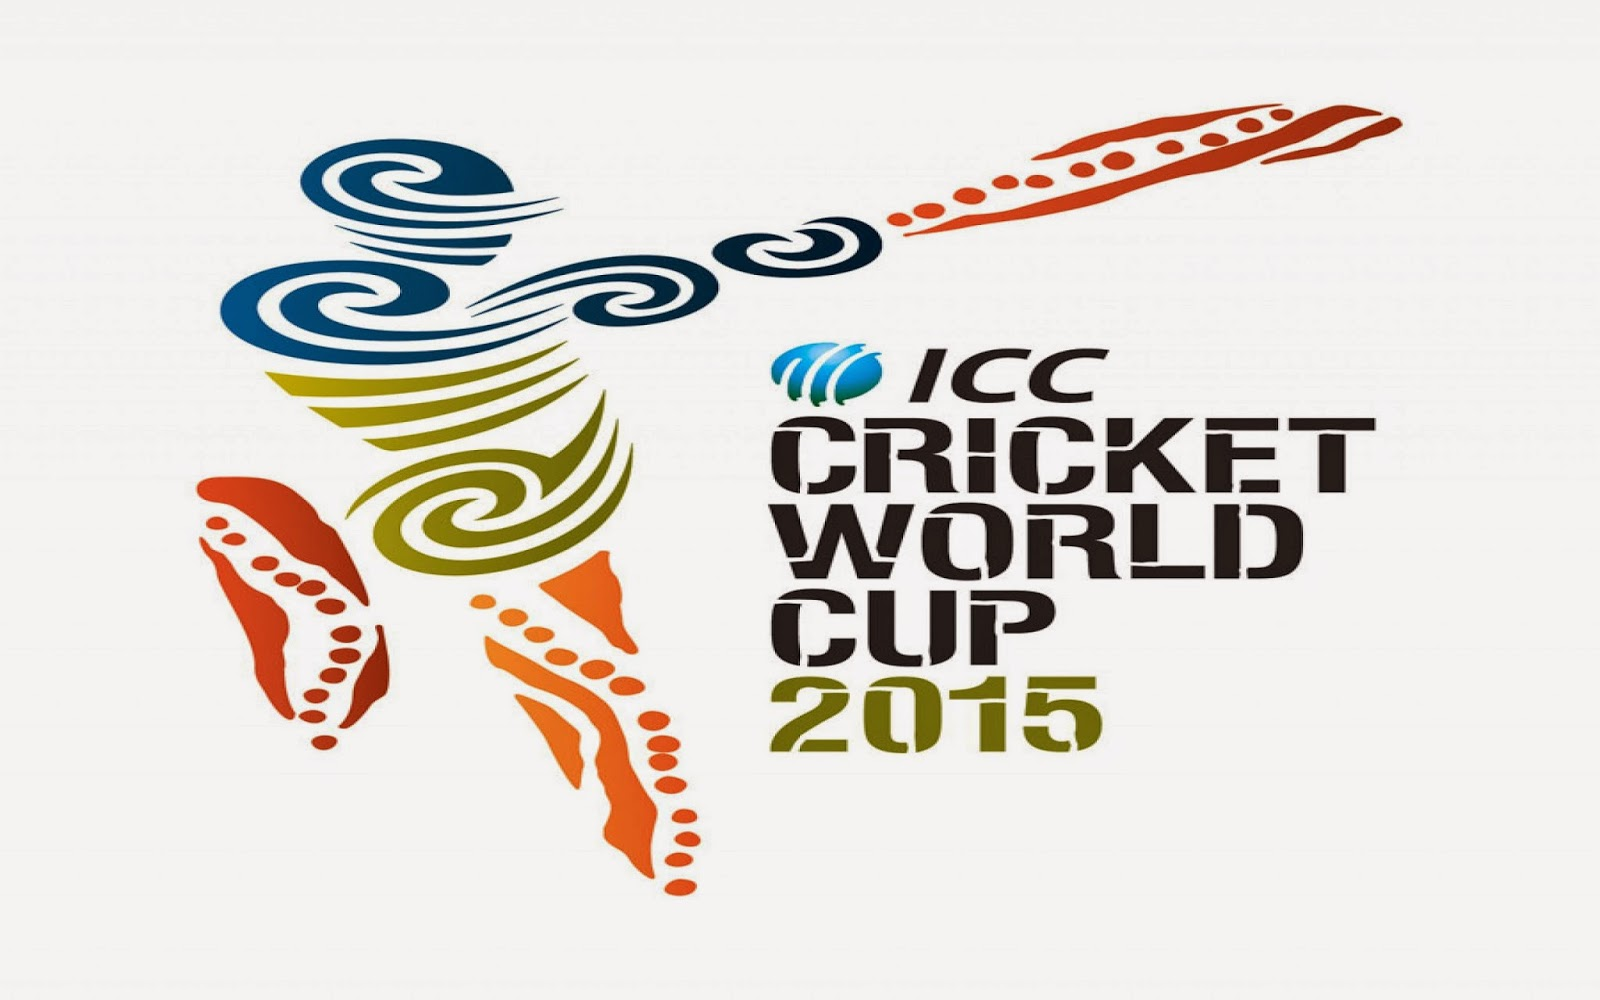 ICC World Cup 2015 Wallpaper 1